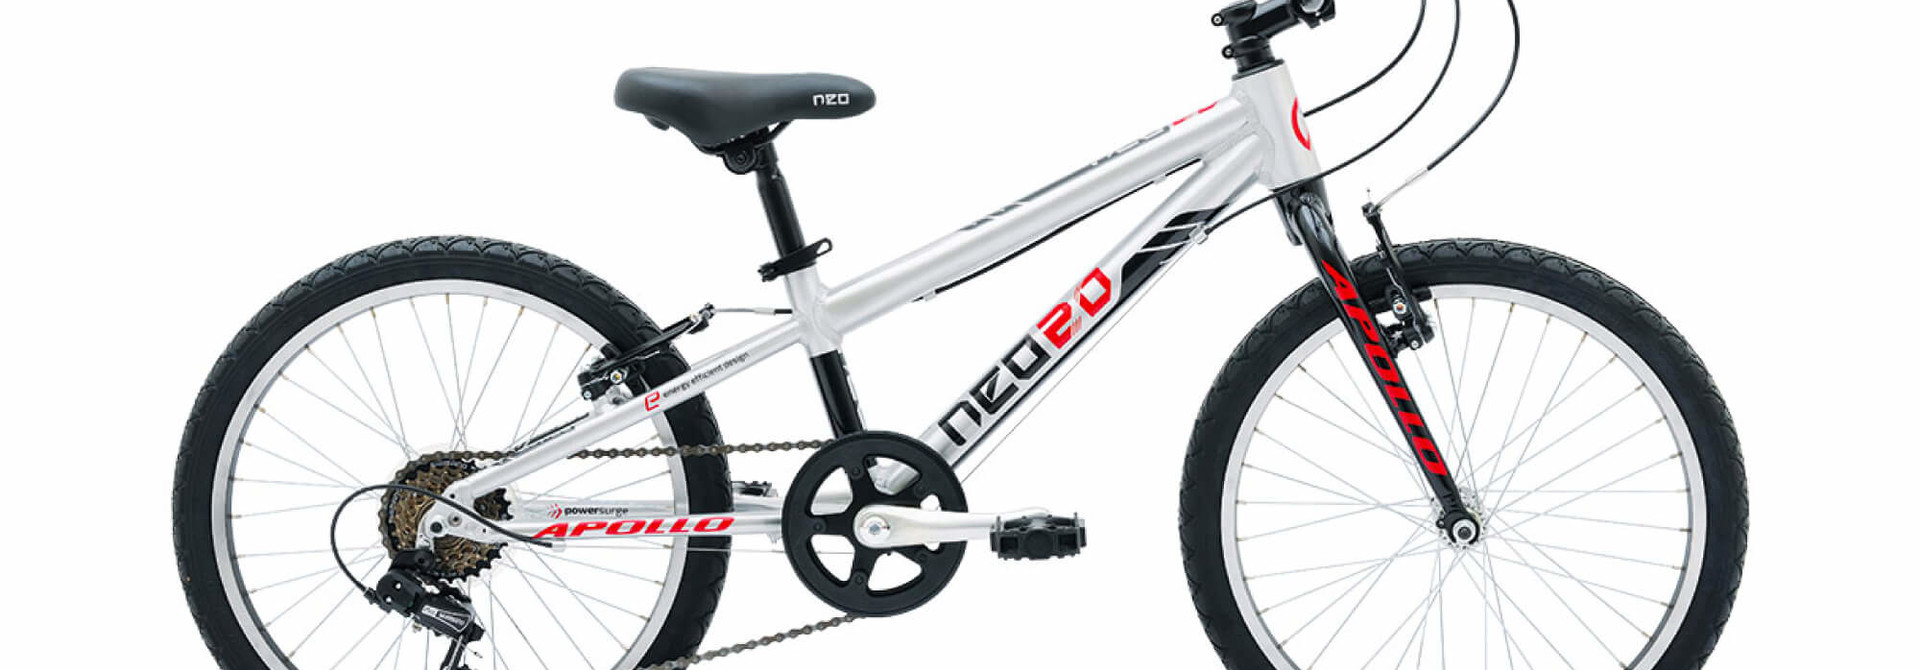 Boys Bike 20 6 Speed